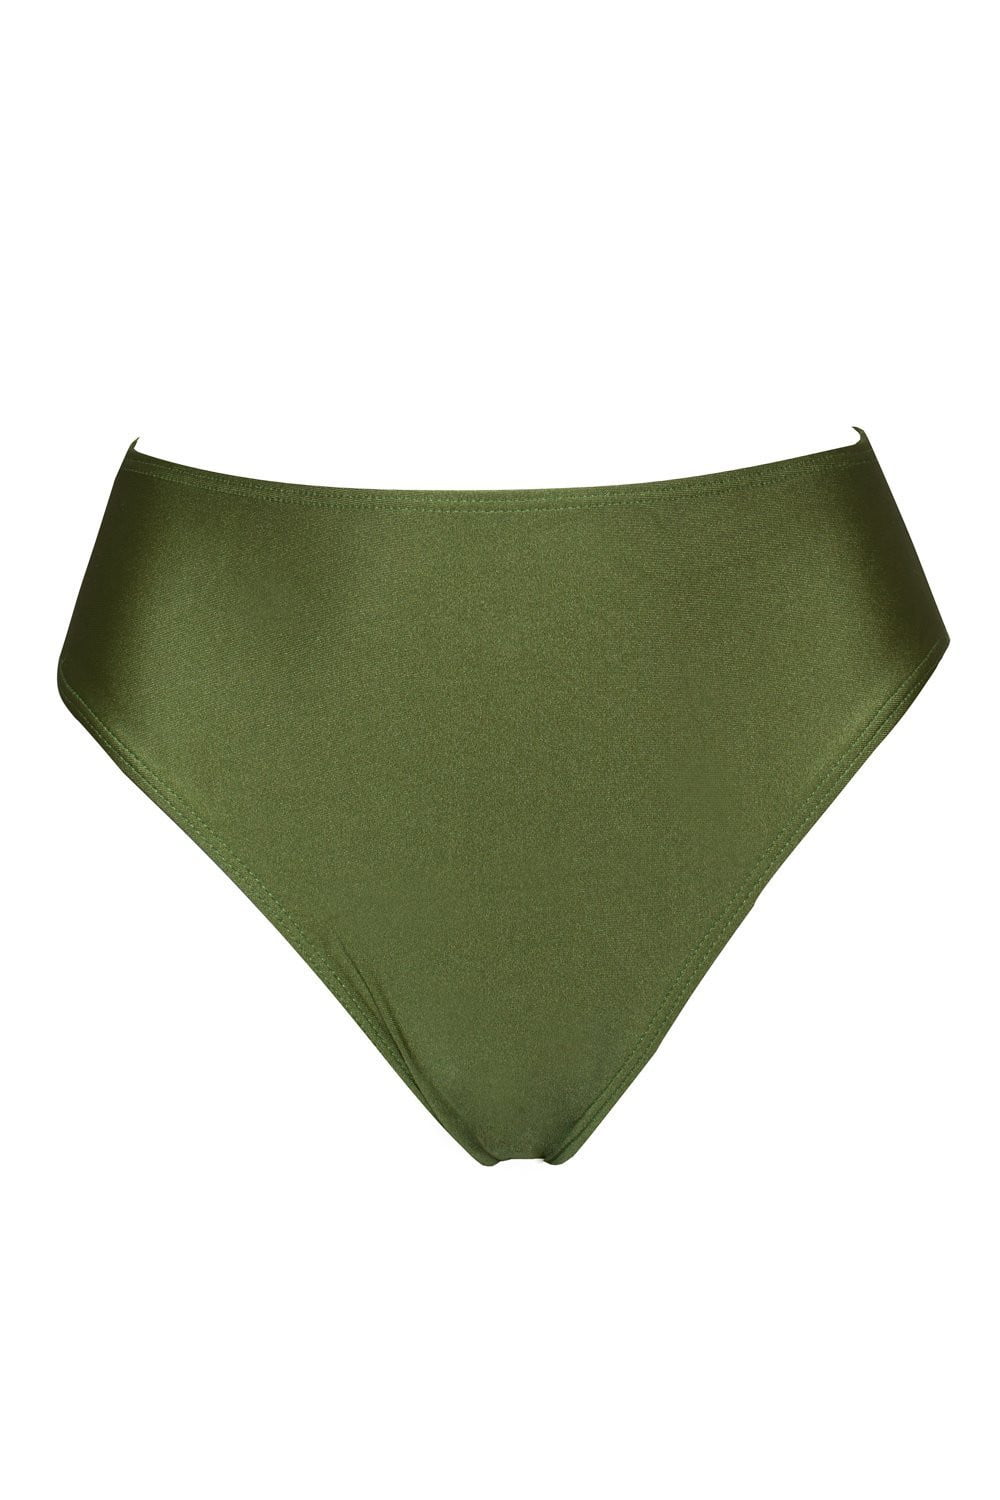 Dark Olive Green High Leg Bikini Bottom (2178786787387)